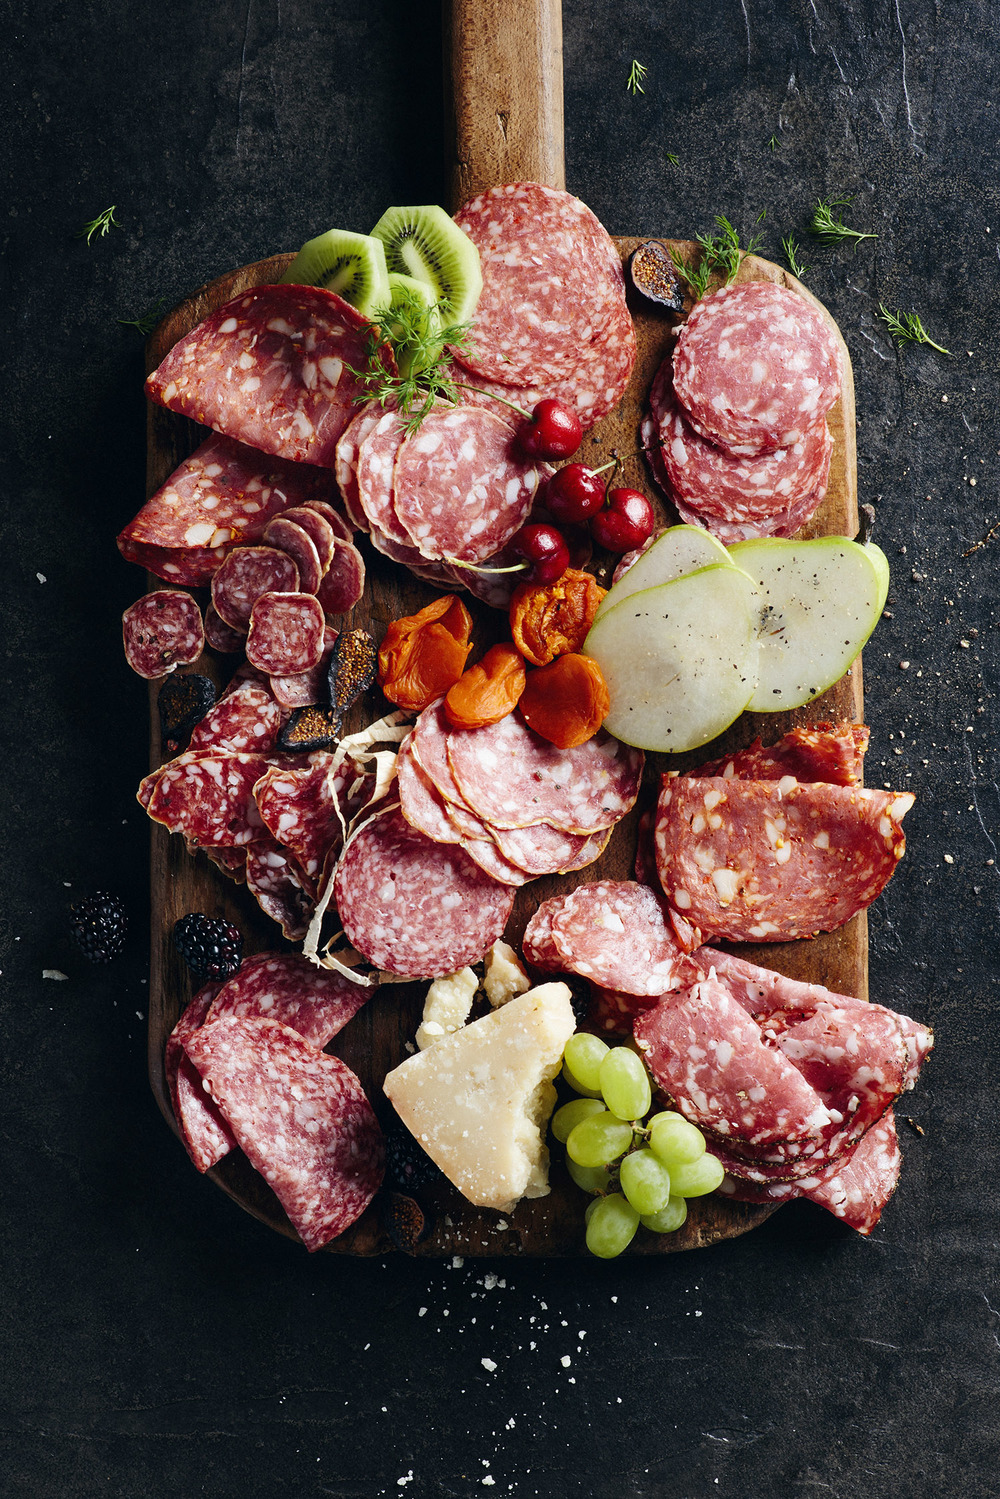 Group-Salami-963_V1_final_crop.jpg